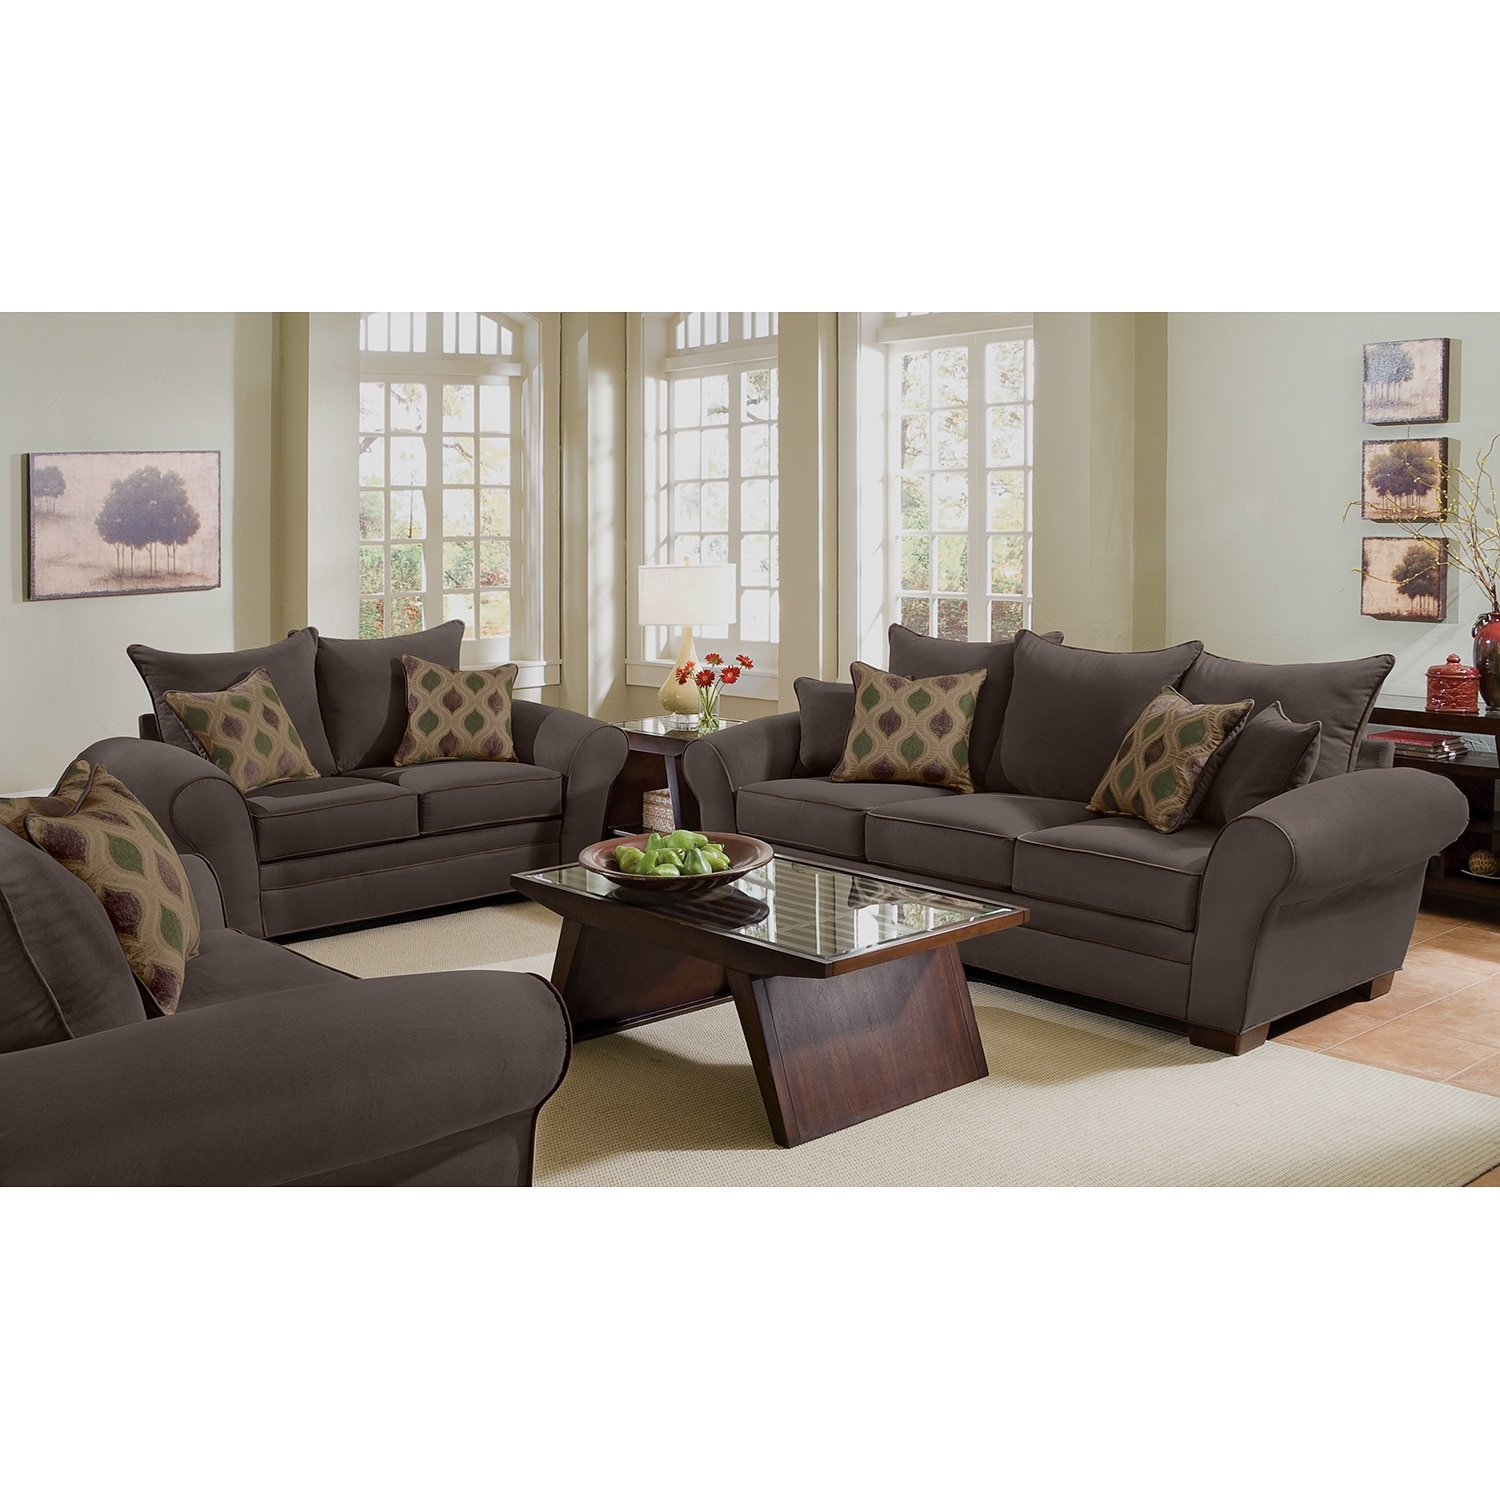 living room package living room furniture packages american signature furniture 11069